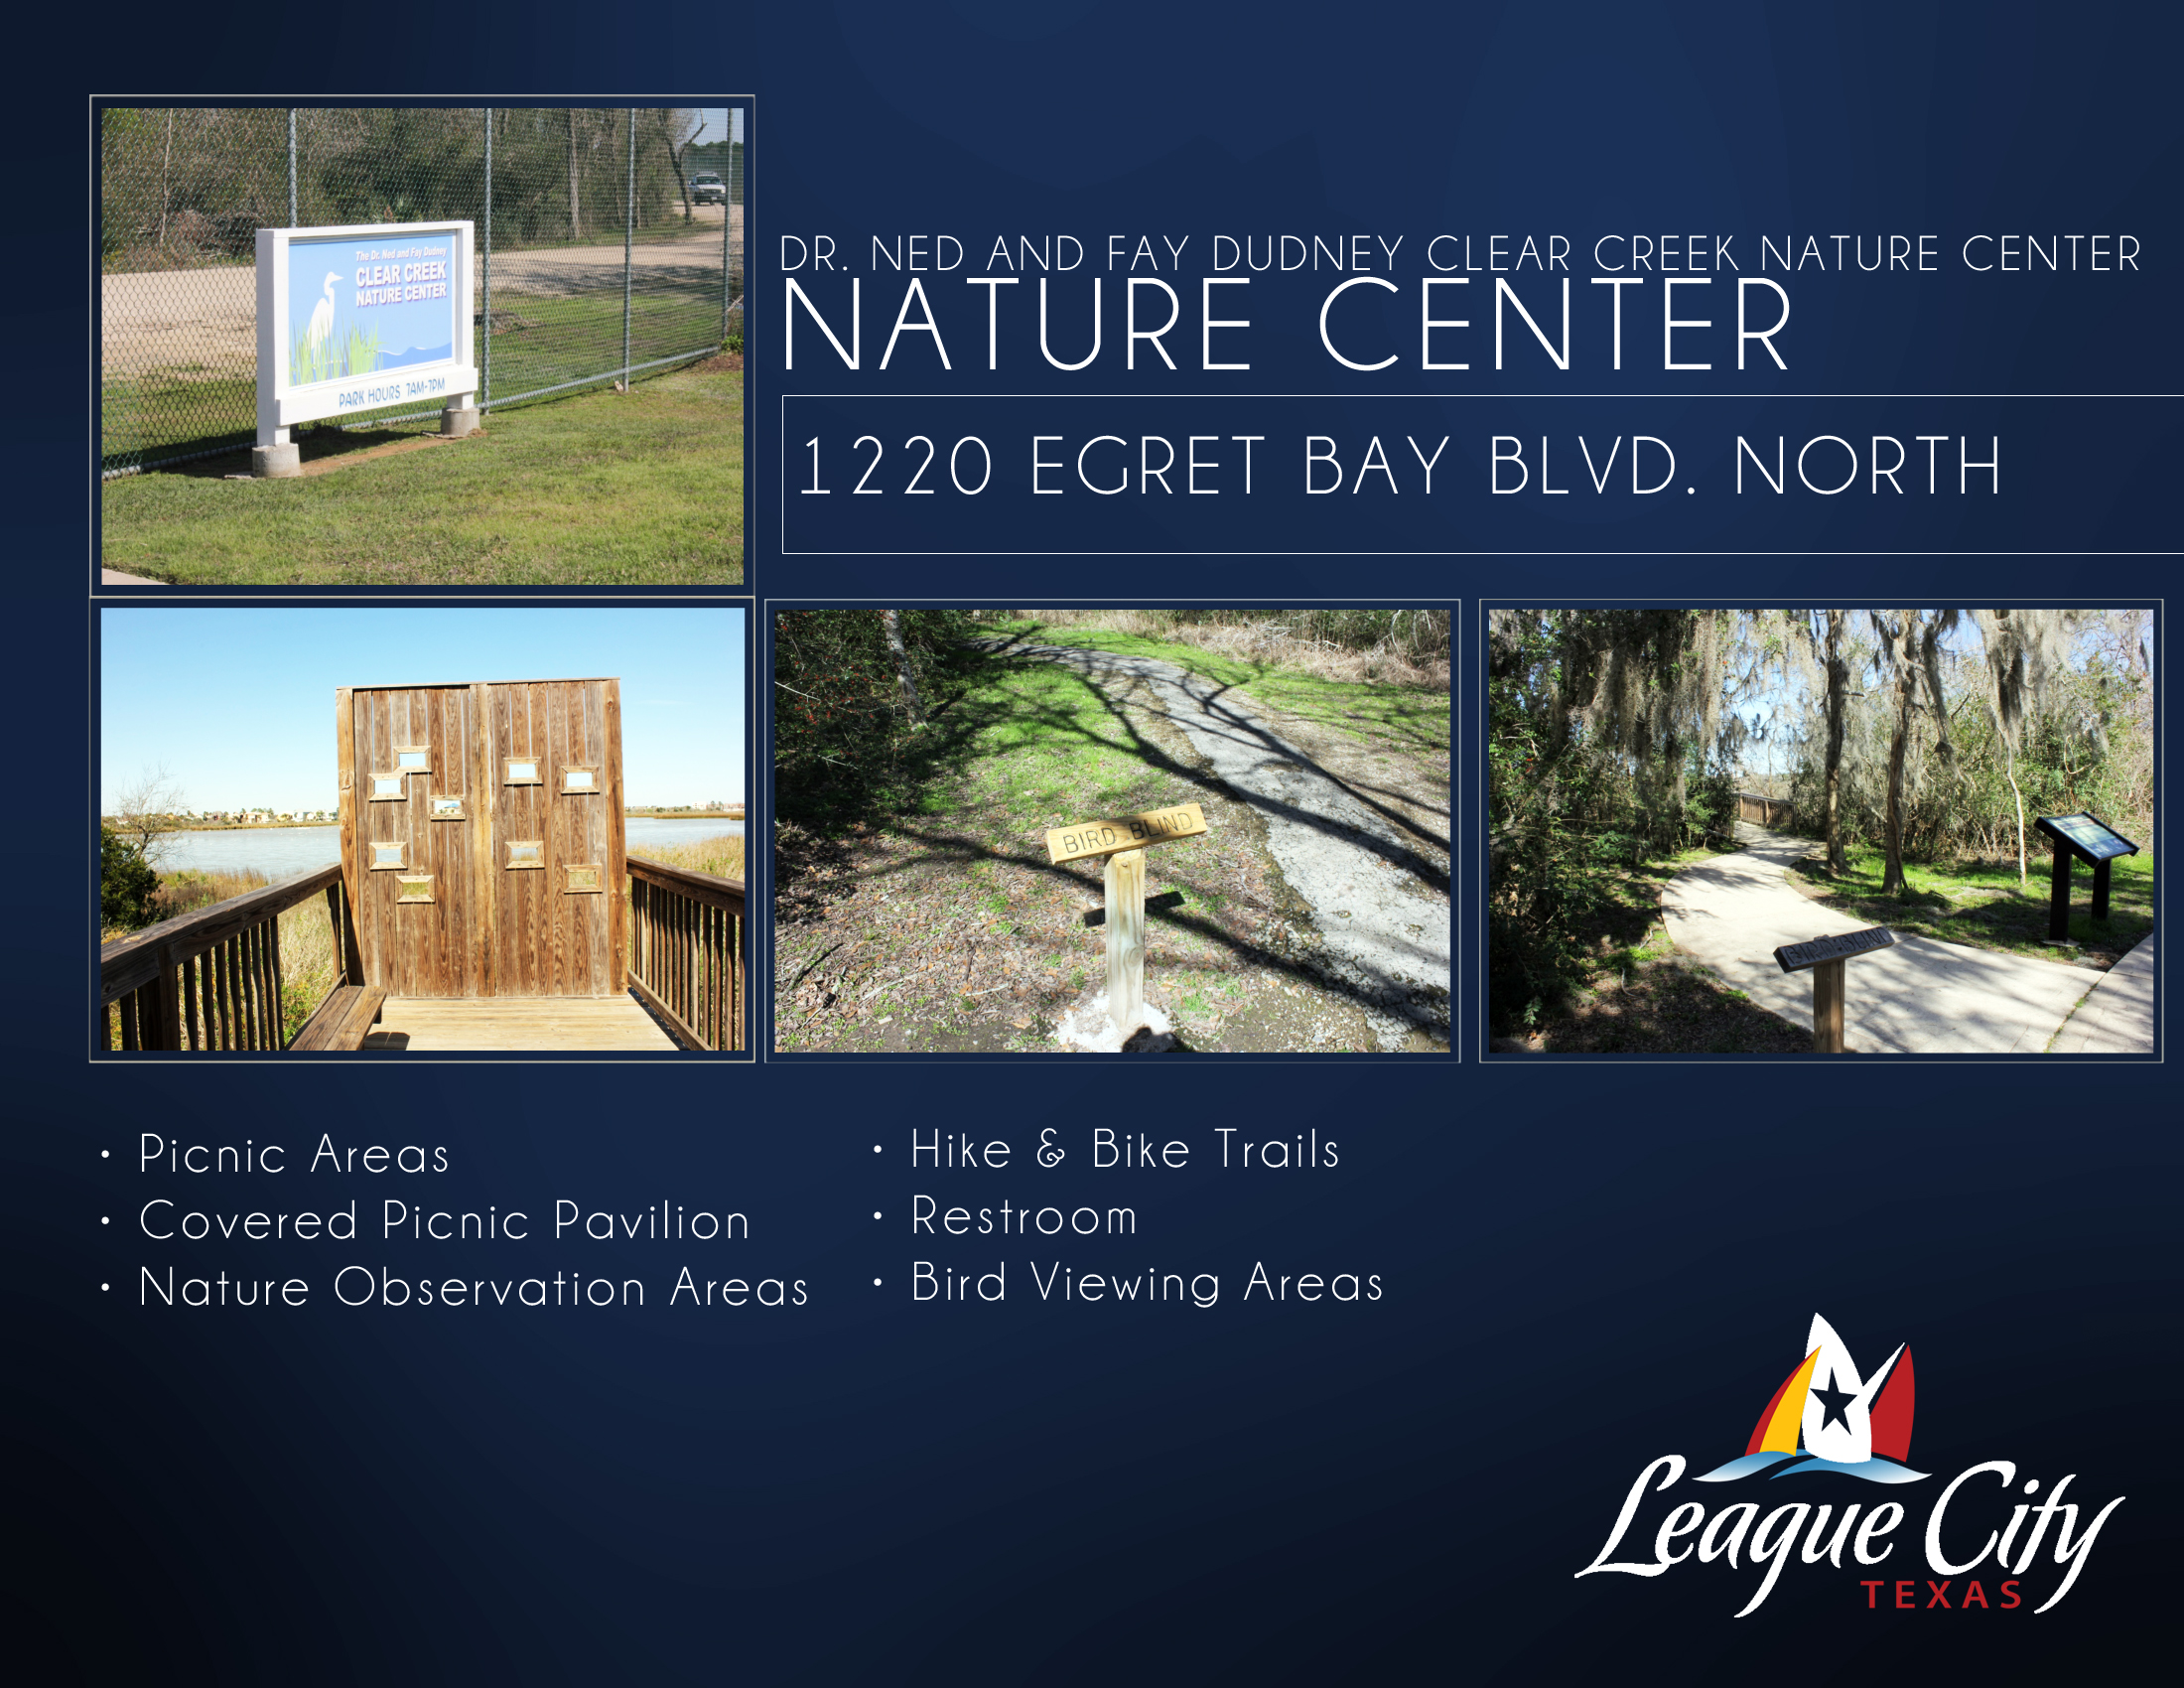 Dr. Ned and Fay Dudney Clear Creek Nature Center Flyer